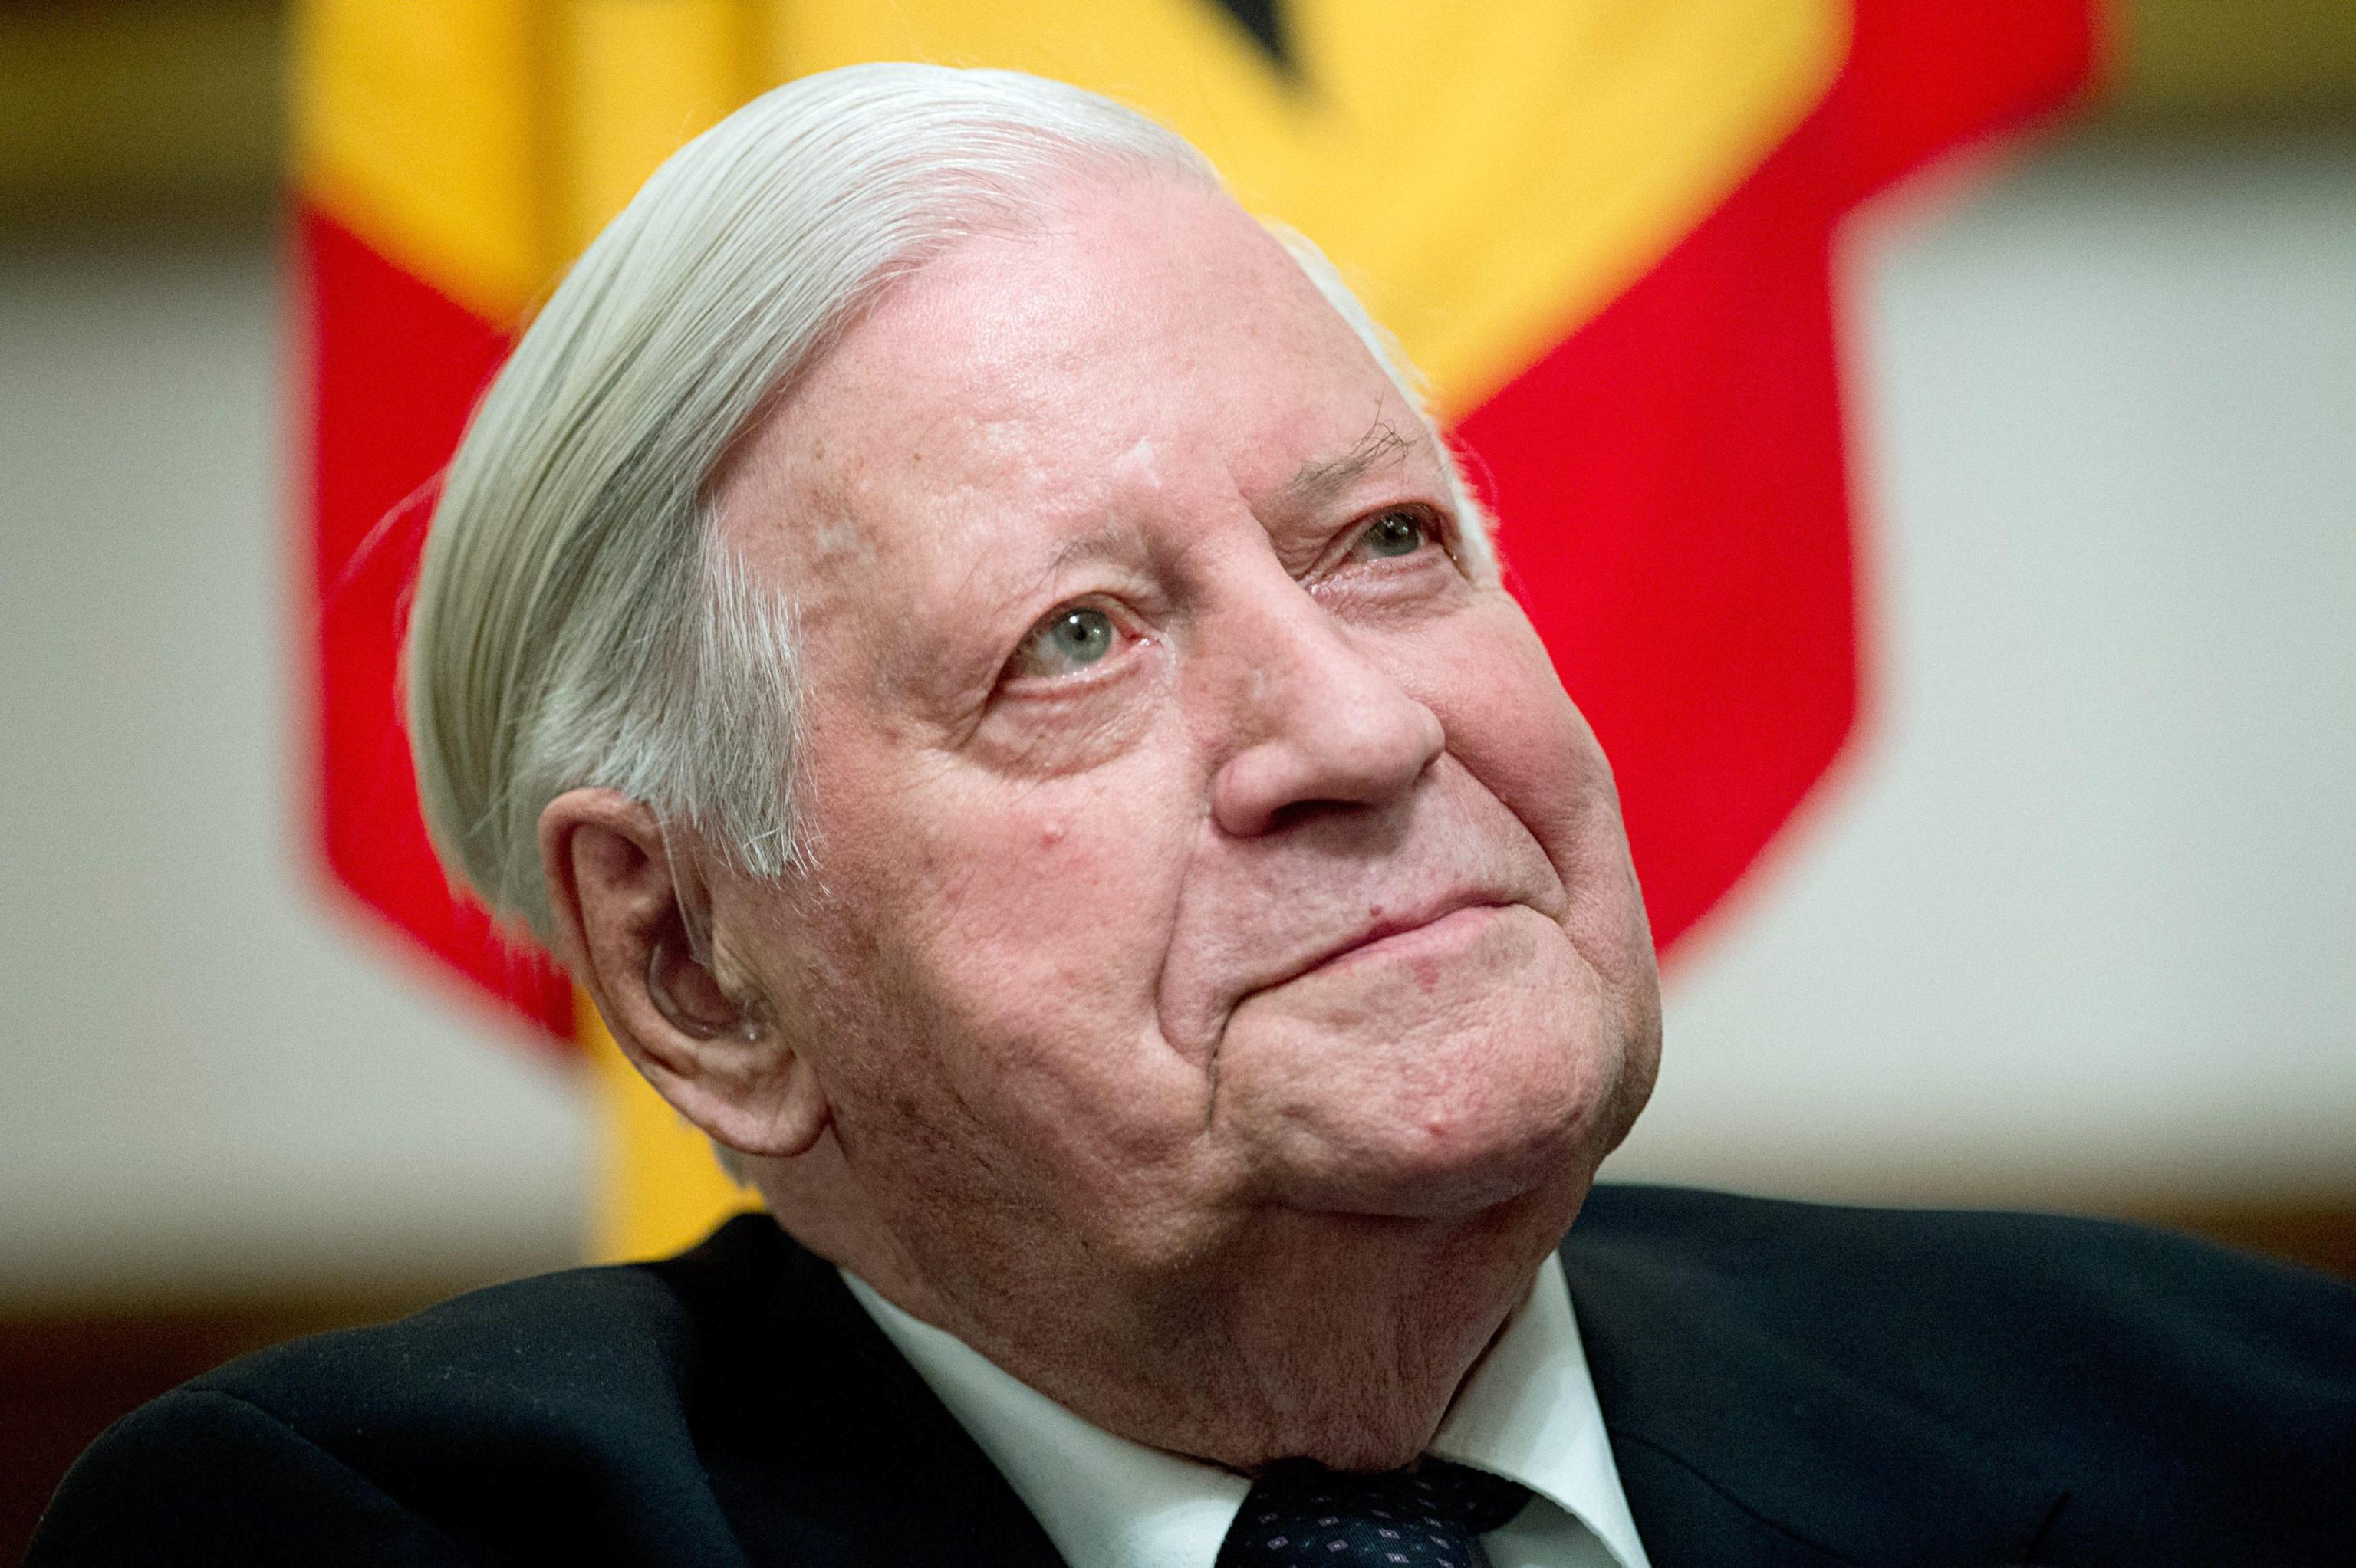 epa04124085 Former German chancellor Helmut Schmidt smiles during a reception in honour of Schmidt's 95th birthday in Berlin, Germany, 13 March 2014. Schmidt had turned 95 on 23 December 2013.  EPA/MAURIZIO GAMBARINI